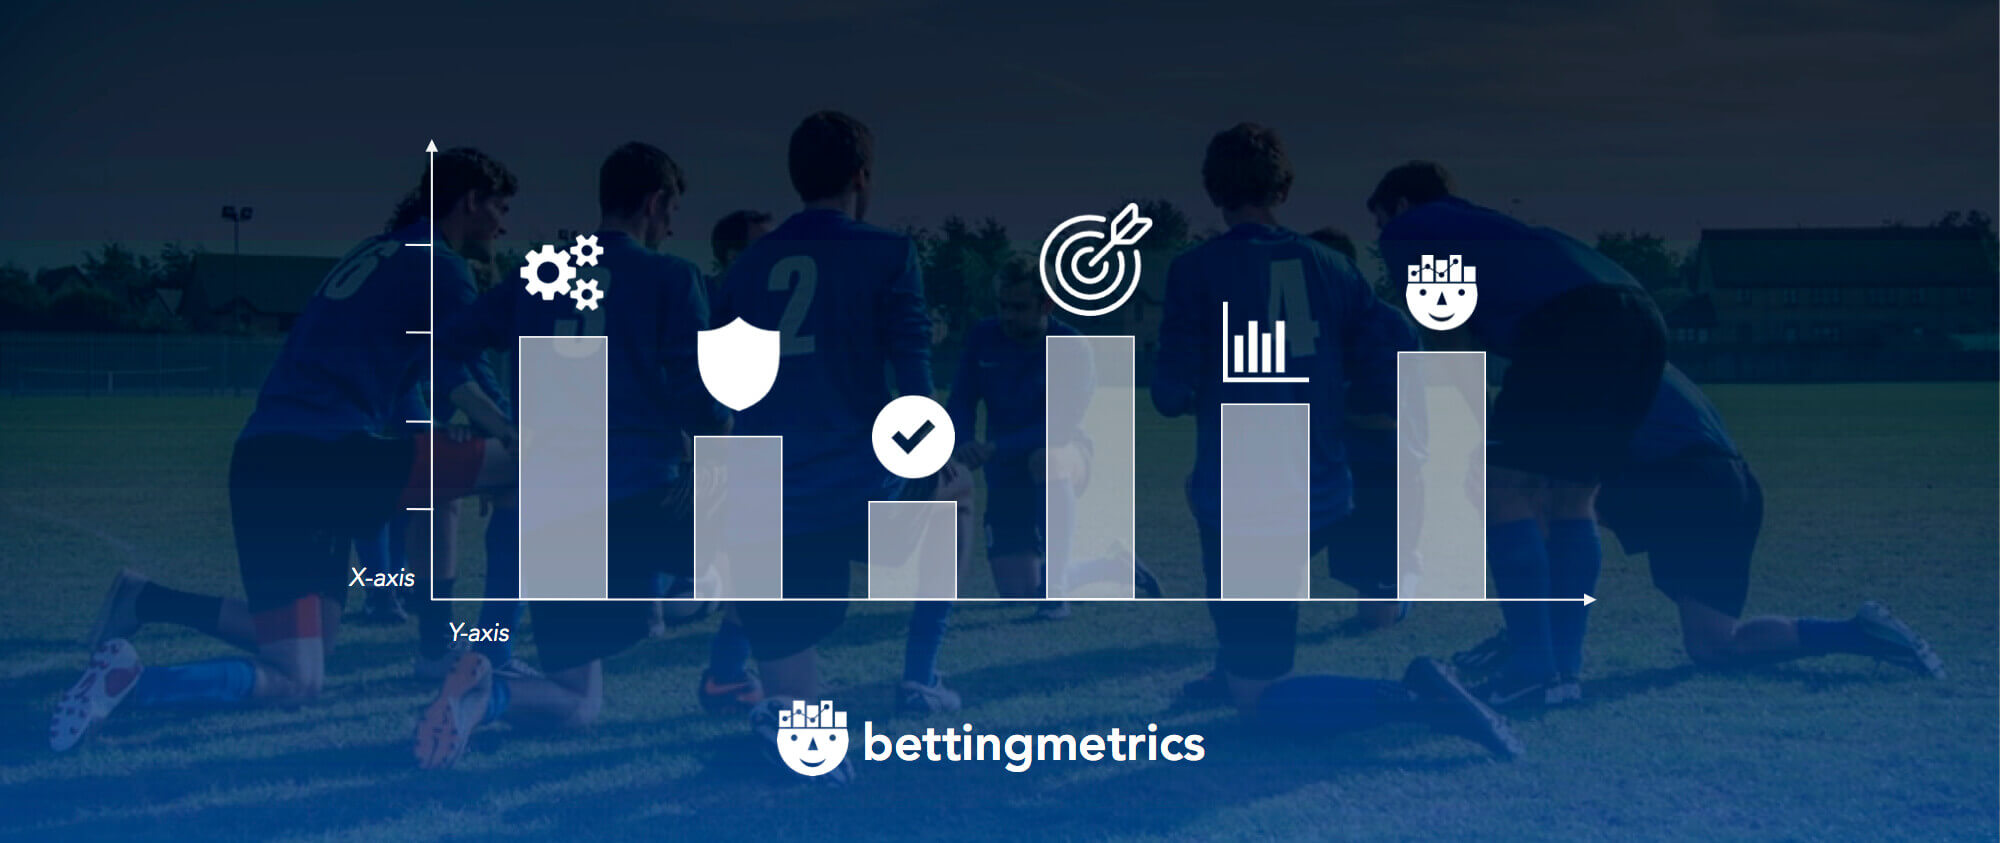 All your betting activities in one place